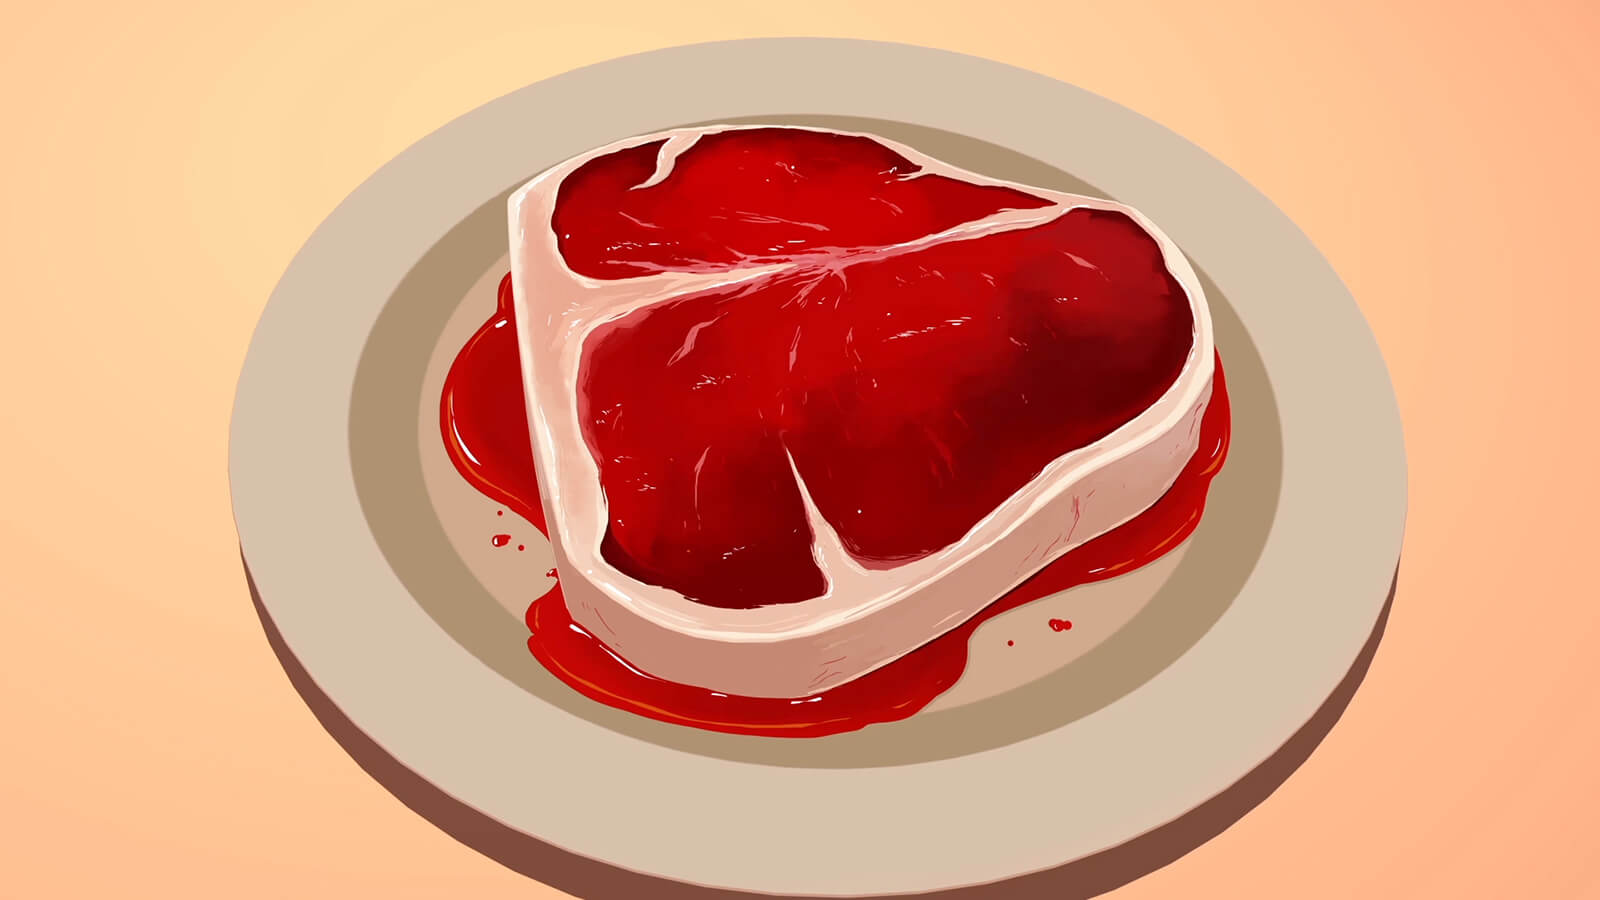 A closeup of a glistening uncooked steak on a white plate. Blood puddles underneath it.